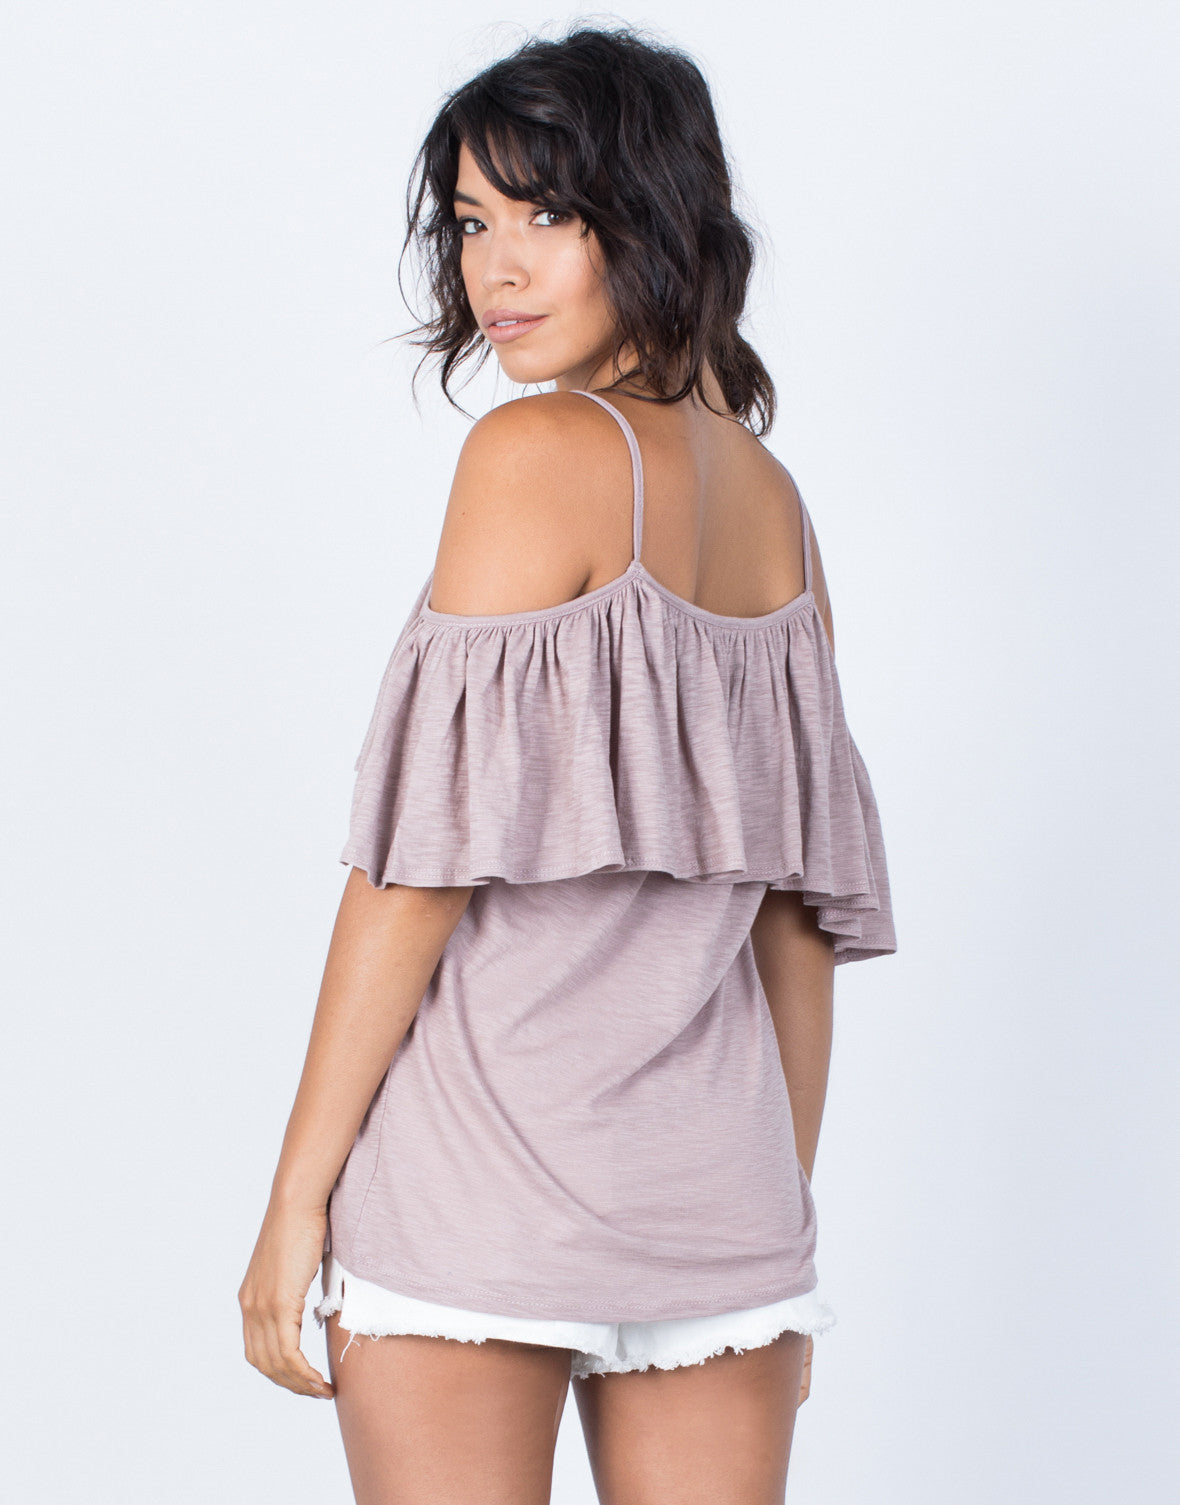 Back View of Sway with Ruffles Top